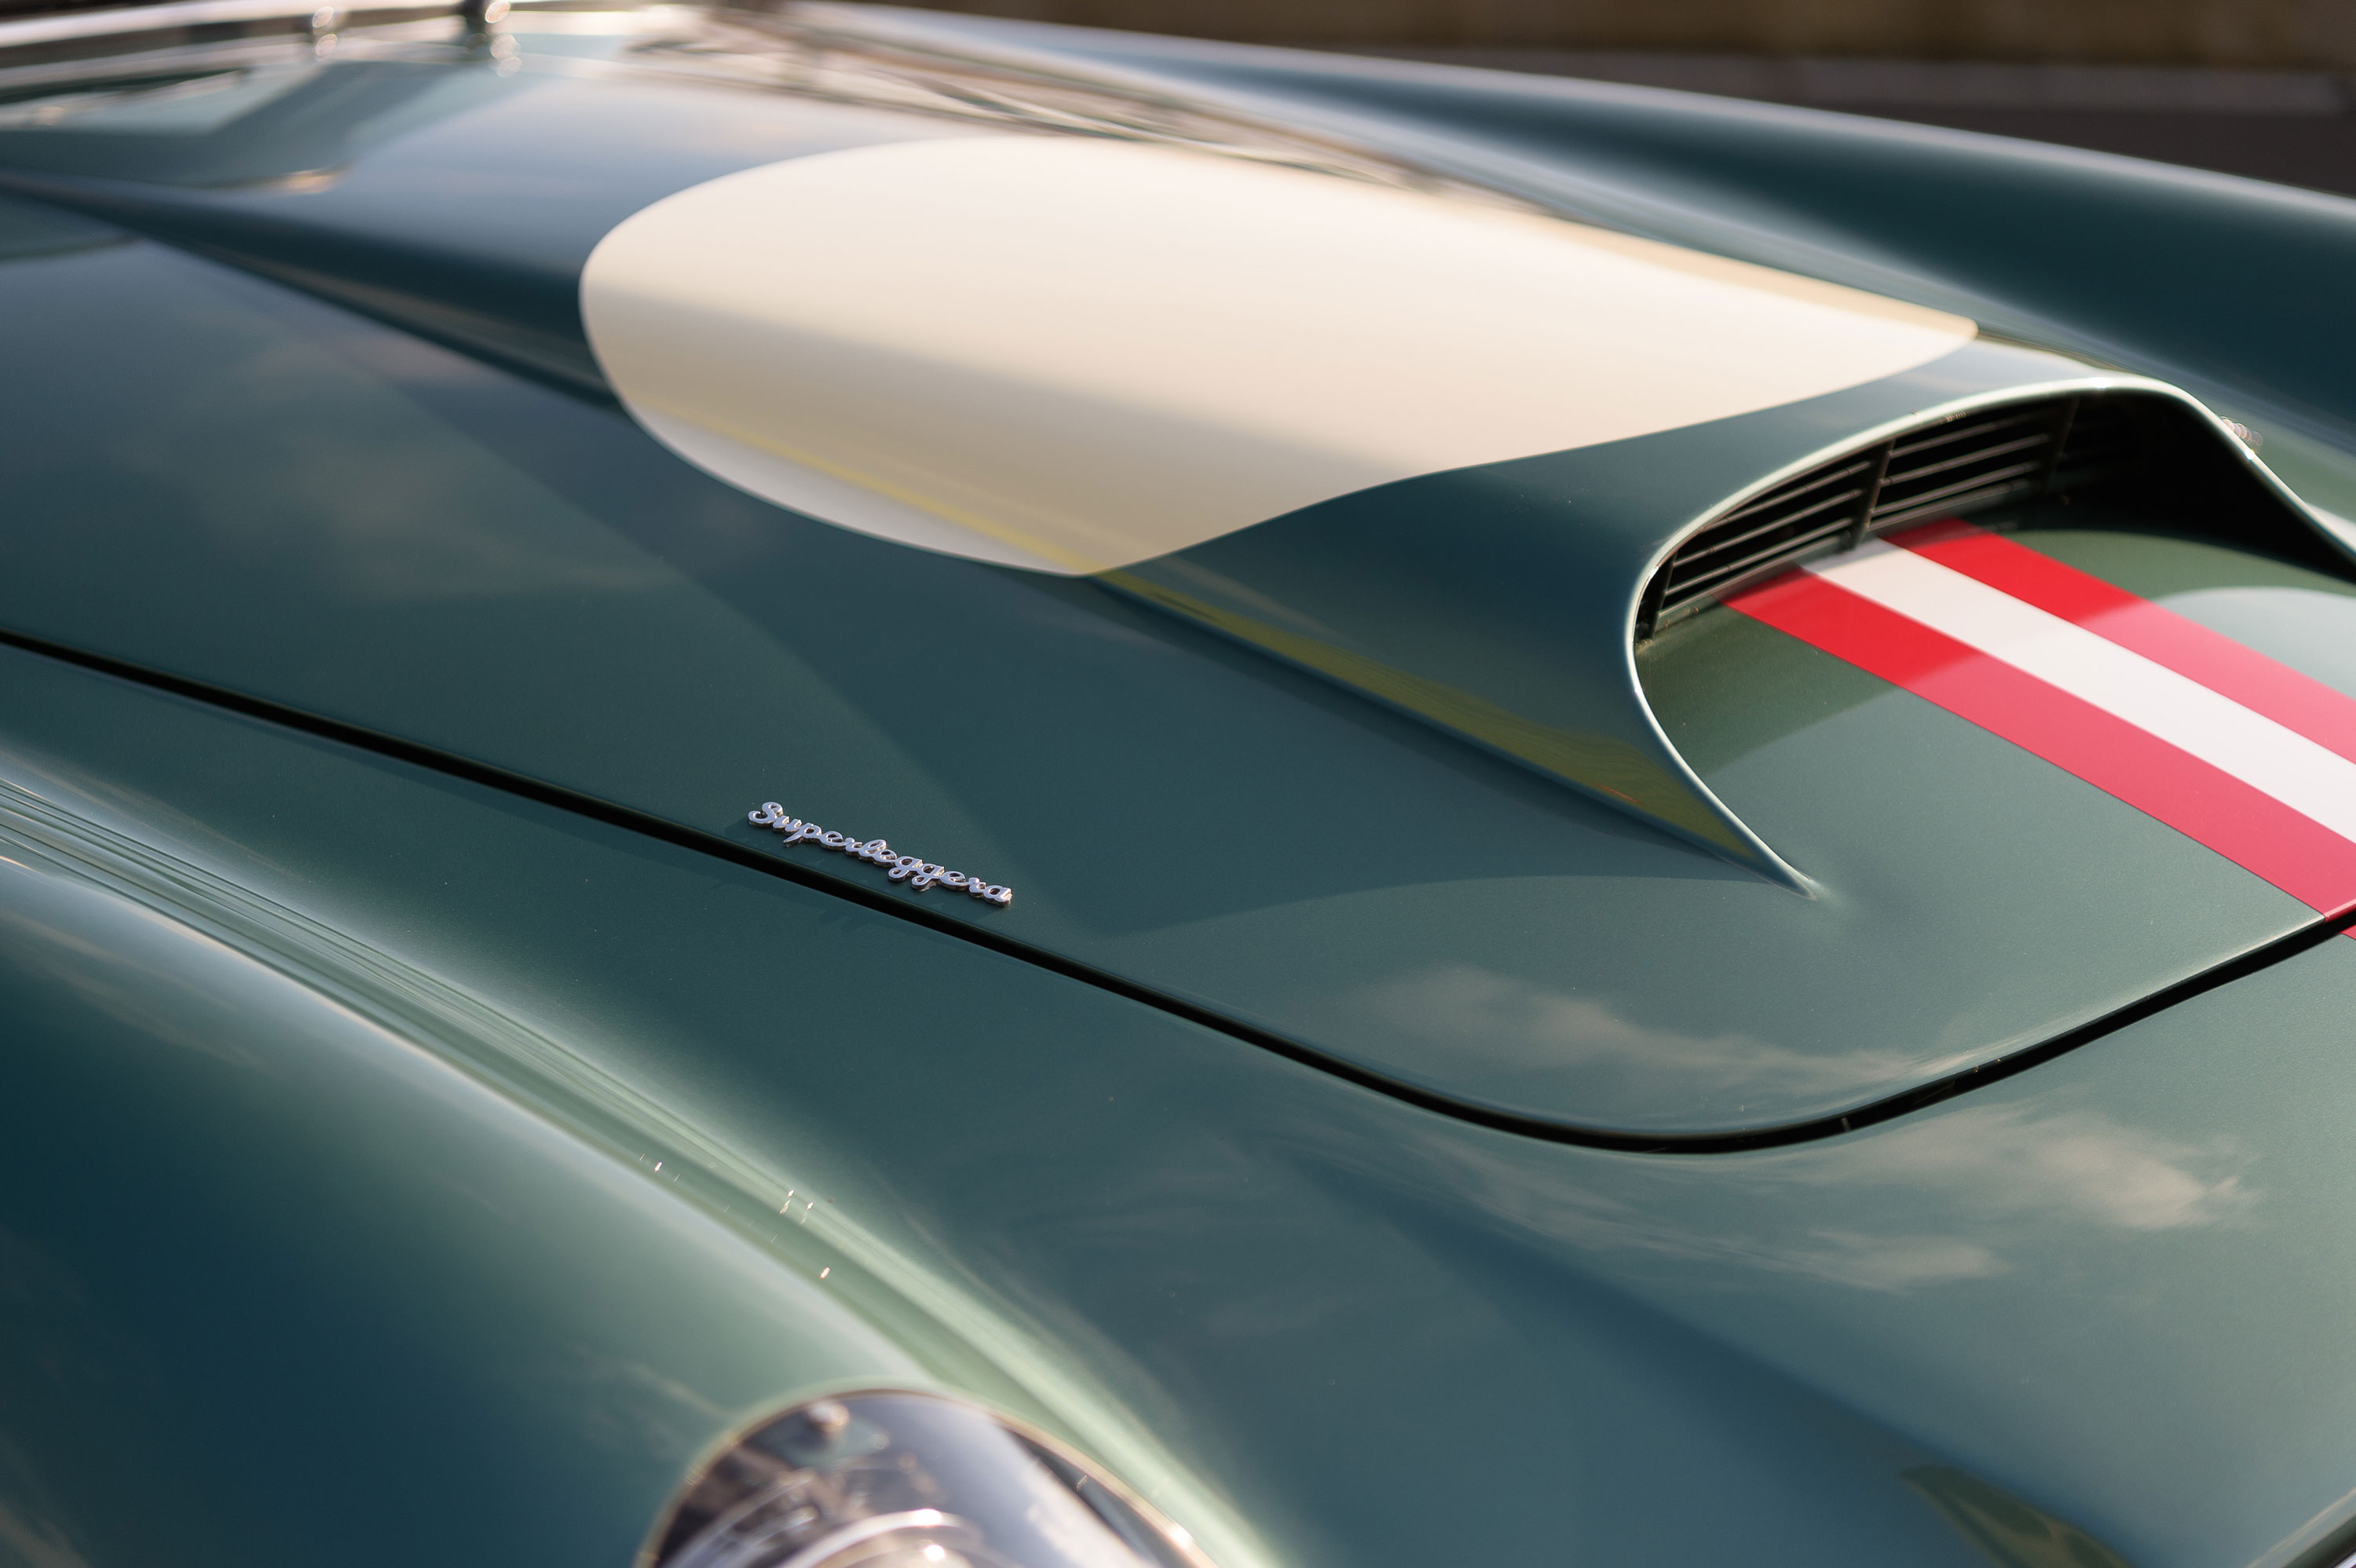 1959 Aston Martin DB4 GT hood scoop detail